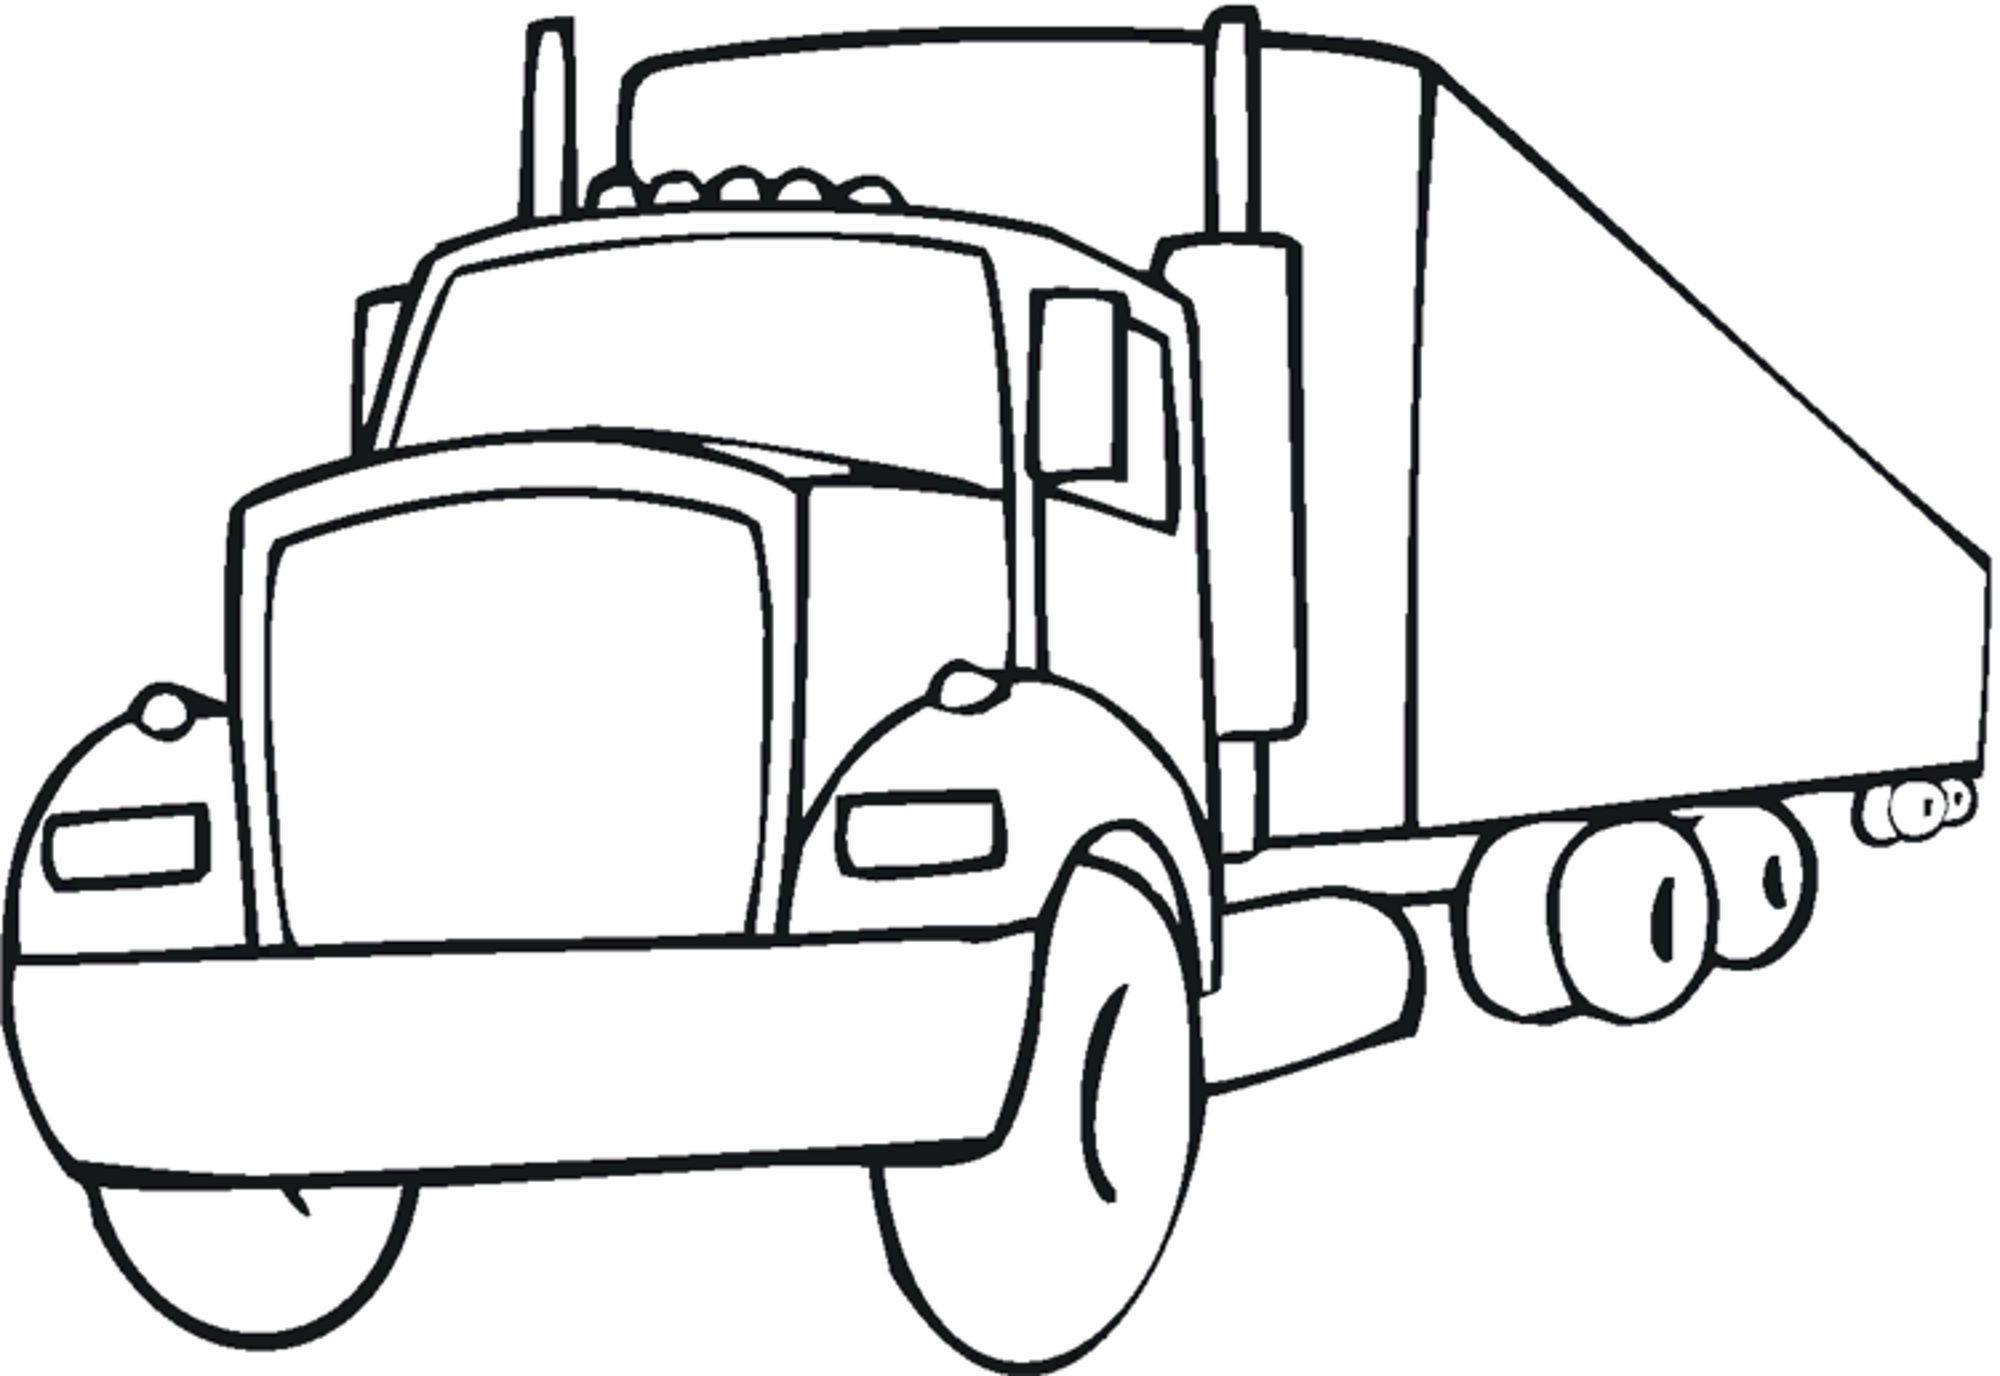 Easy Little Kid Coloring Pages Truck Coloring Pages Coloring Pages For Boys Tractor Coloring Pages